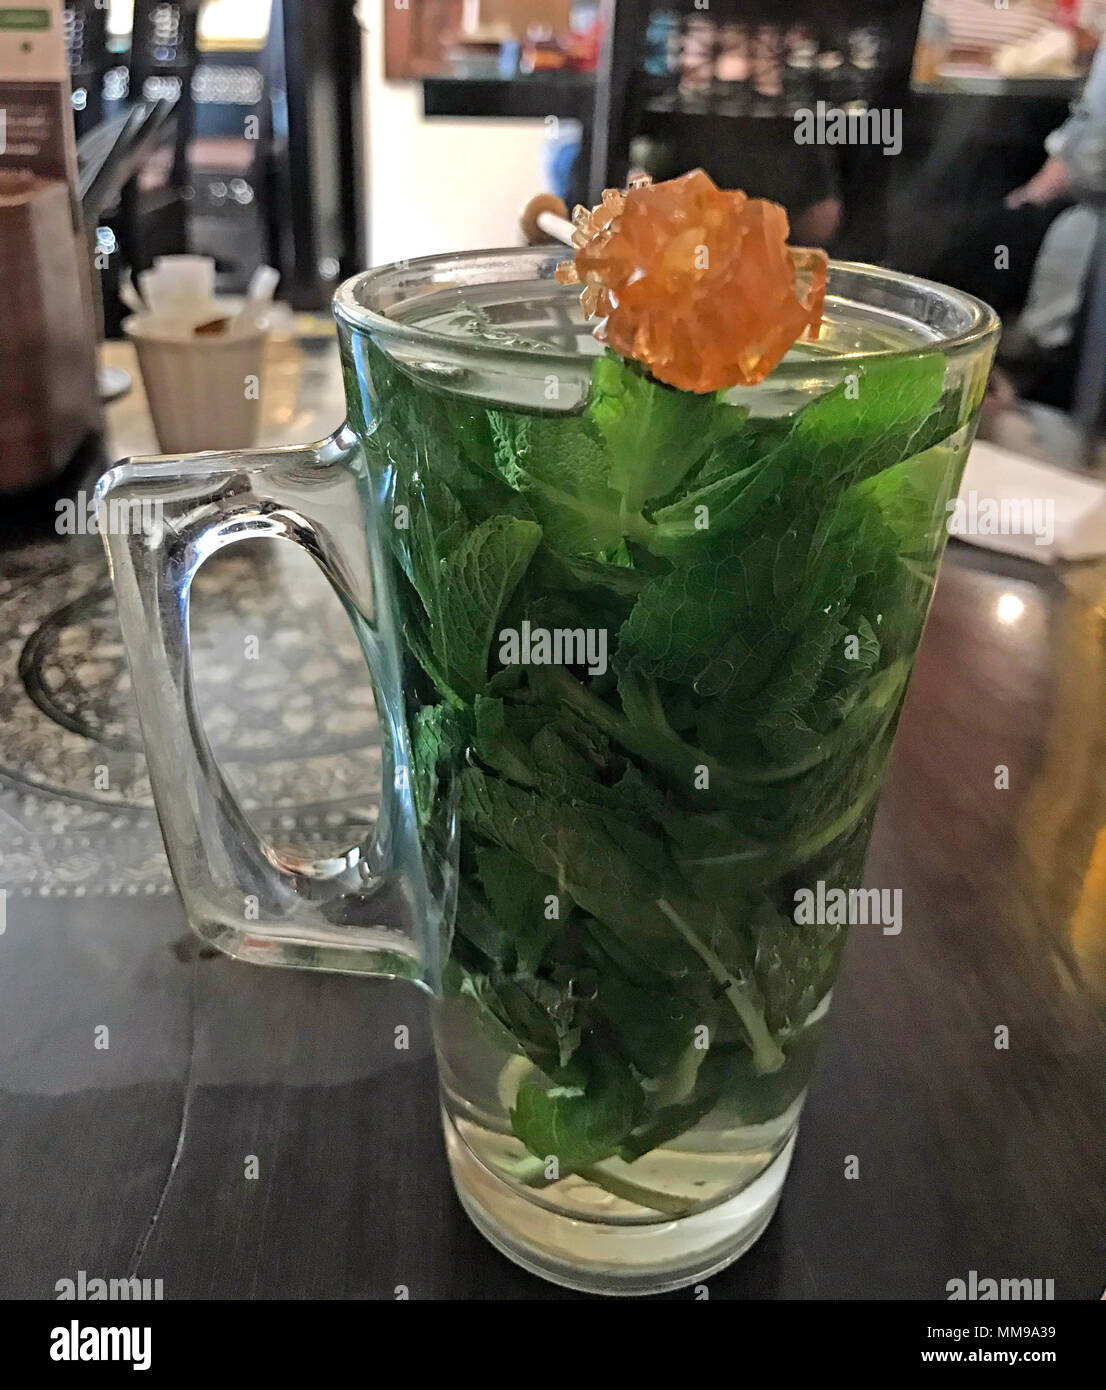 GoTonysmith,@HotpixUK,food,middle,east,eastern,cuisine,Syria,Lebanon,Sunni,Shia,cooking,restaurant,cafe,Middle eastern Mint Tea,Mint,leaves,leaf,traditional,with,Sugar,crystal,Swizzle,stick,glass,tall,tall glass,Damascena,village,Herbal Tea,Herbal,Caffeine Free,mint leaves,spearmint tea,peppermint tea,kitchen,sweet,sugar